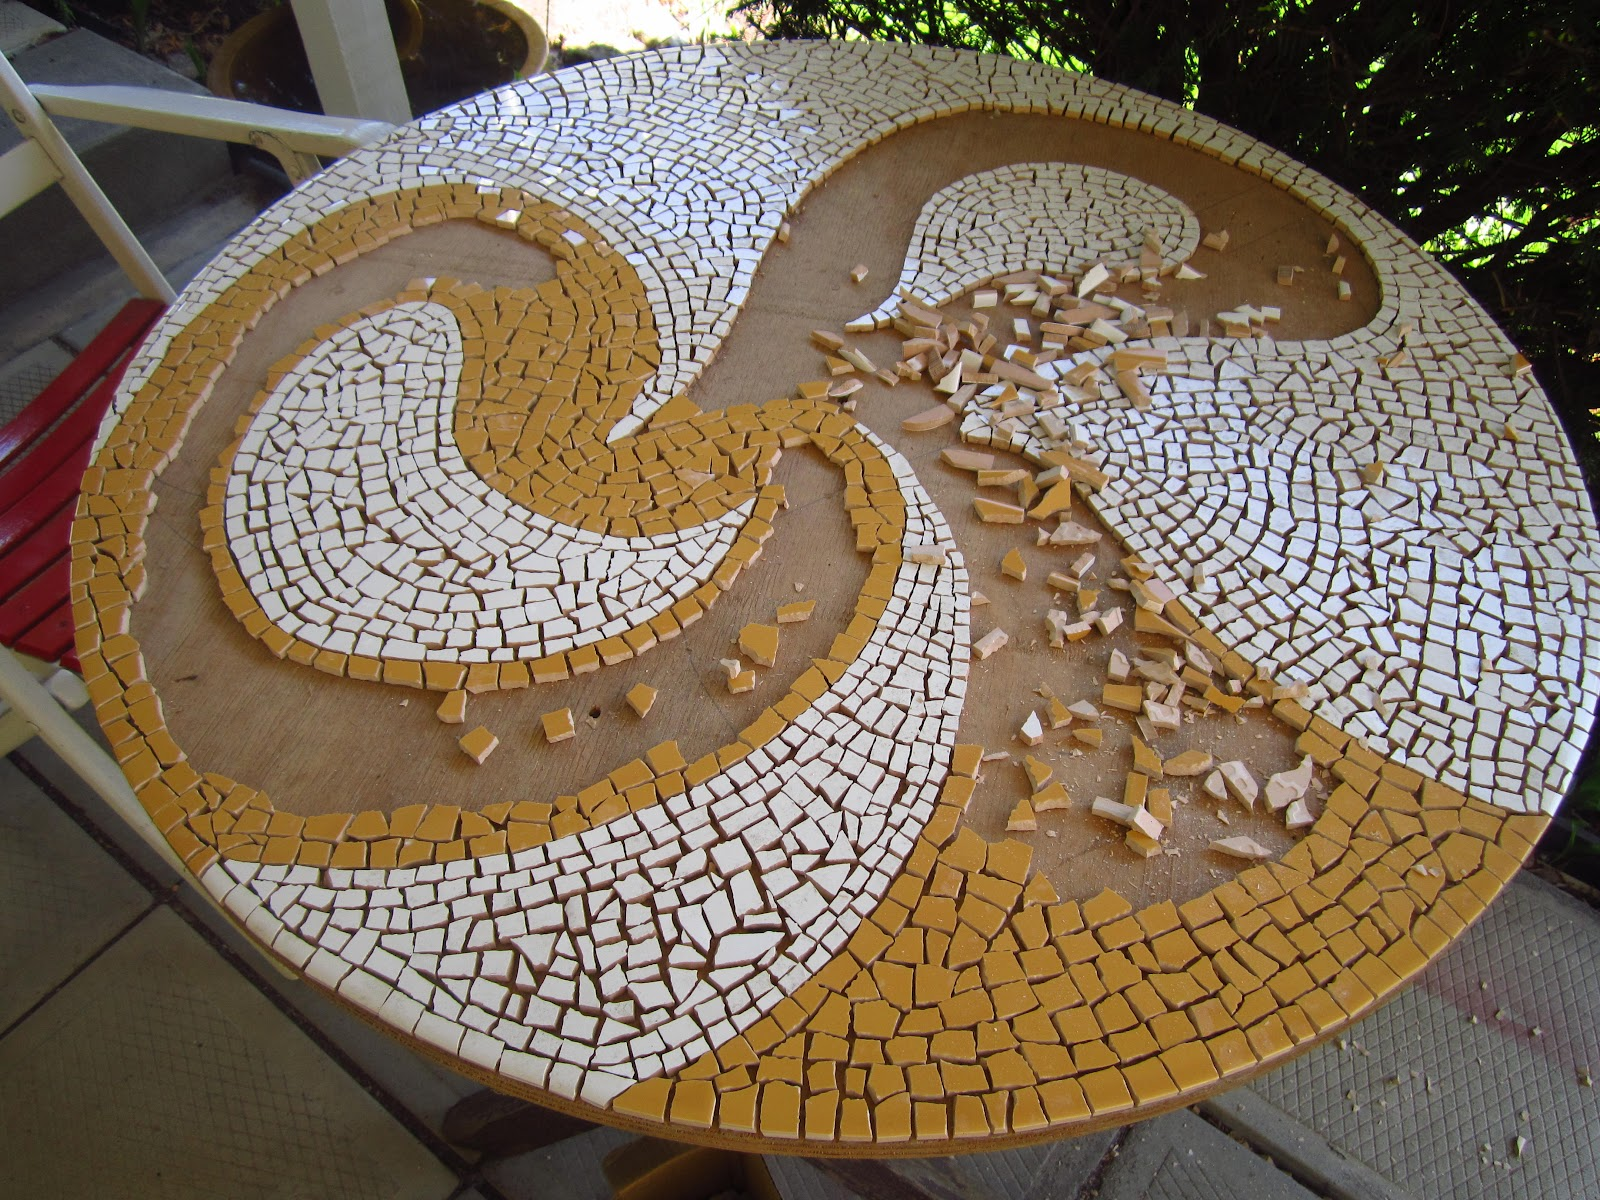 incredible How To Make A Mosaic Table Part - 6: Mosaic table top in progress